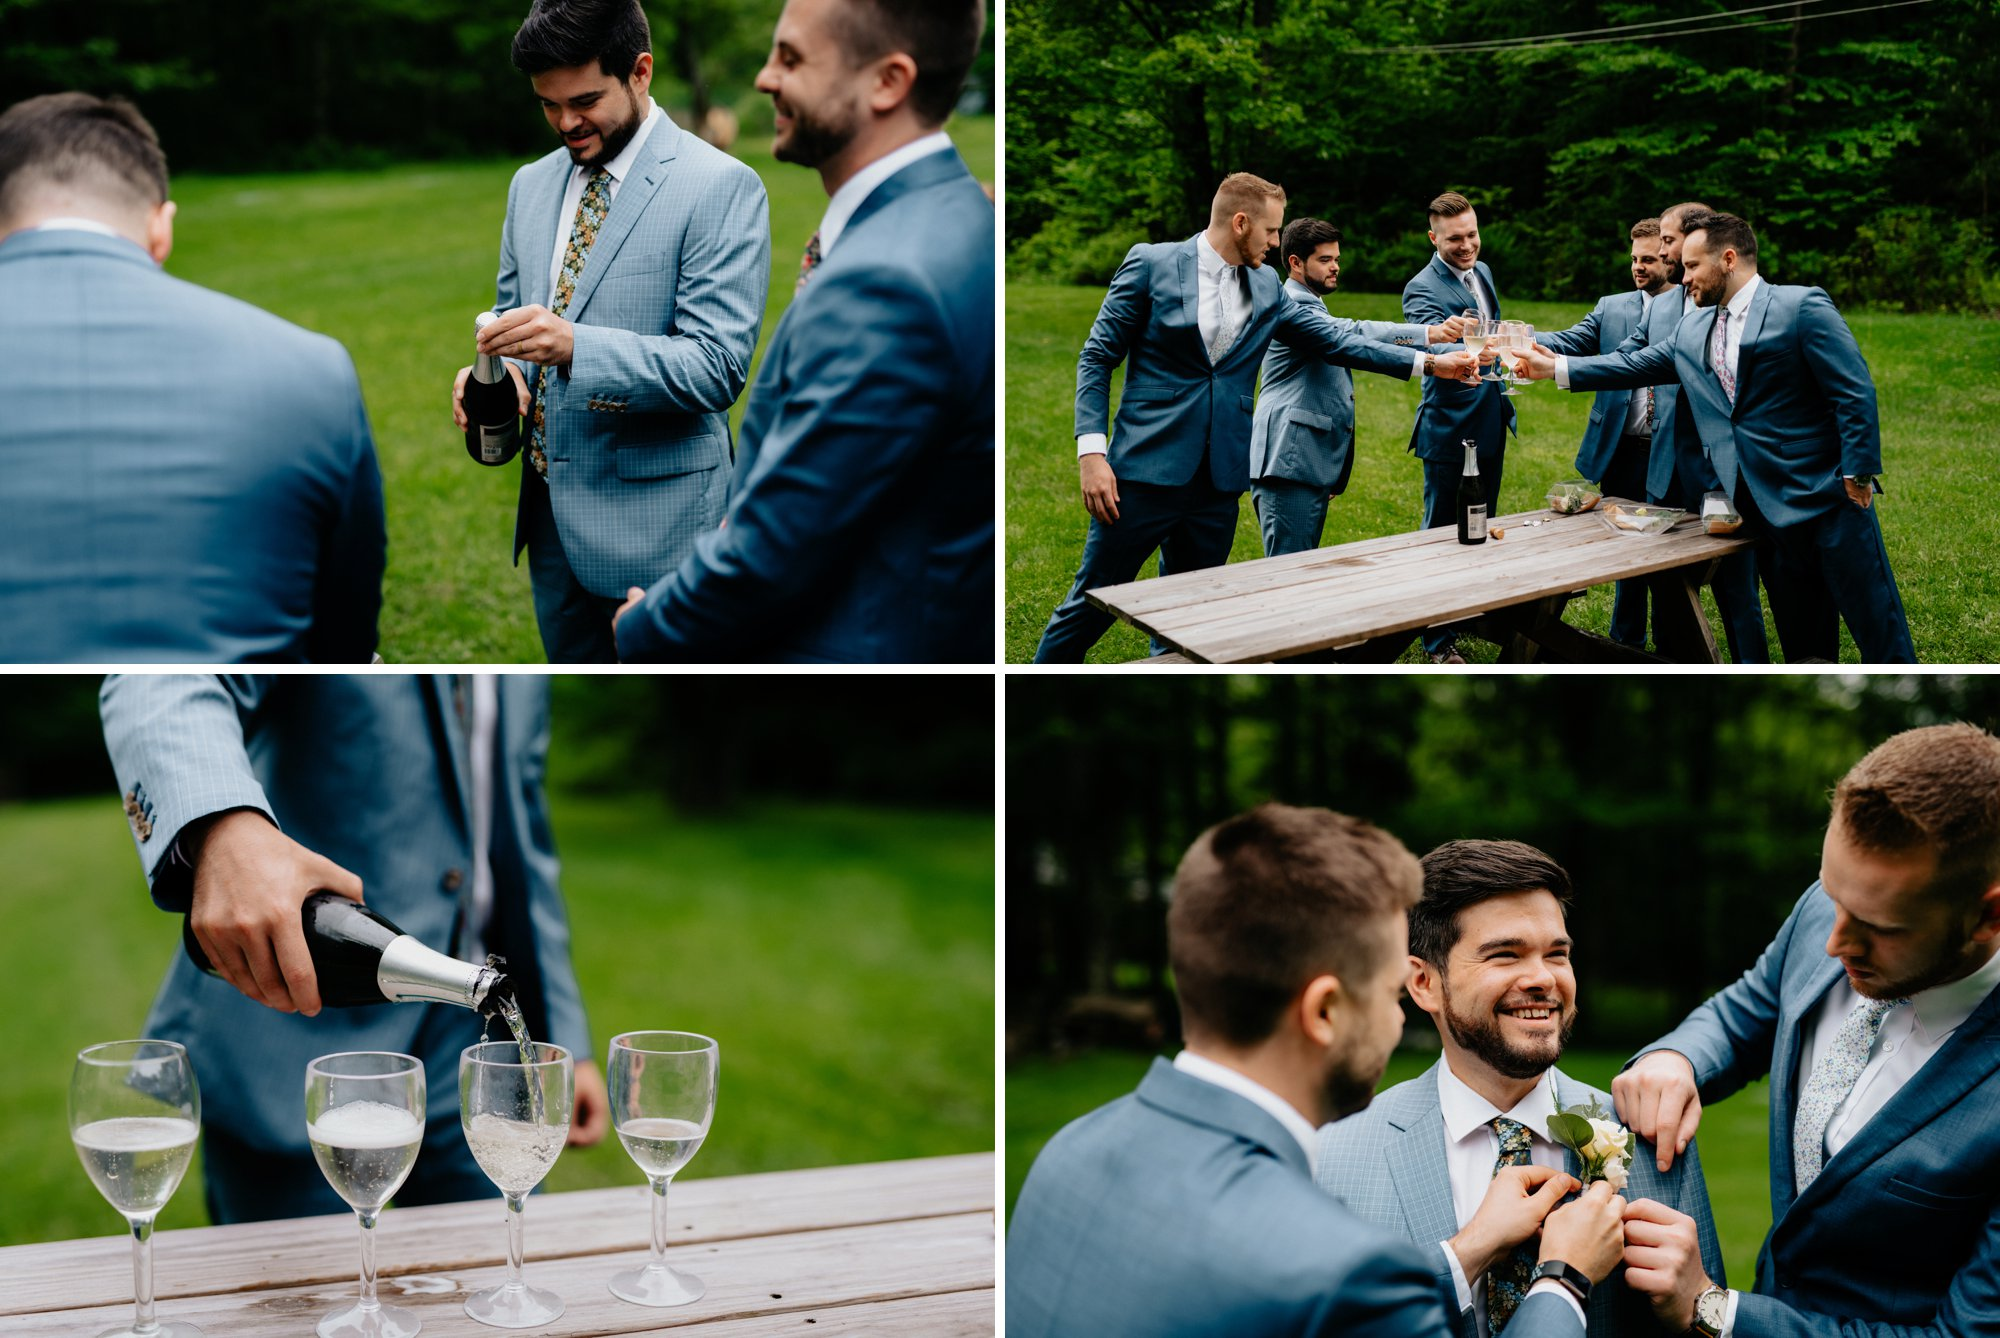 Fiddle Lake Farm Philadelphia Pennsylvania Misty Rustic Wedding with Lush Florals Groomsmen toast